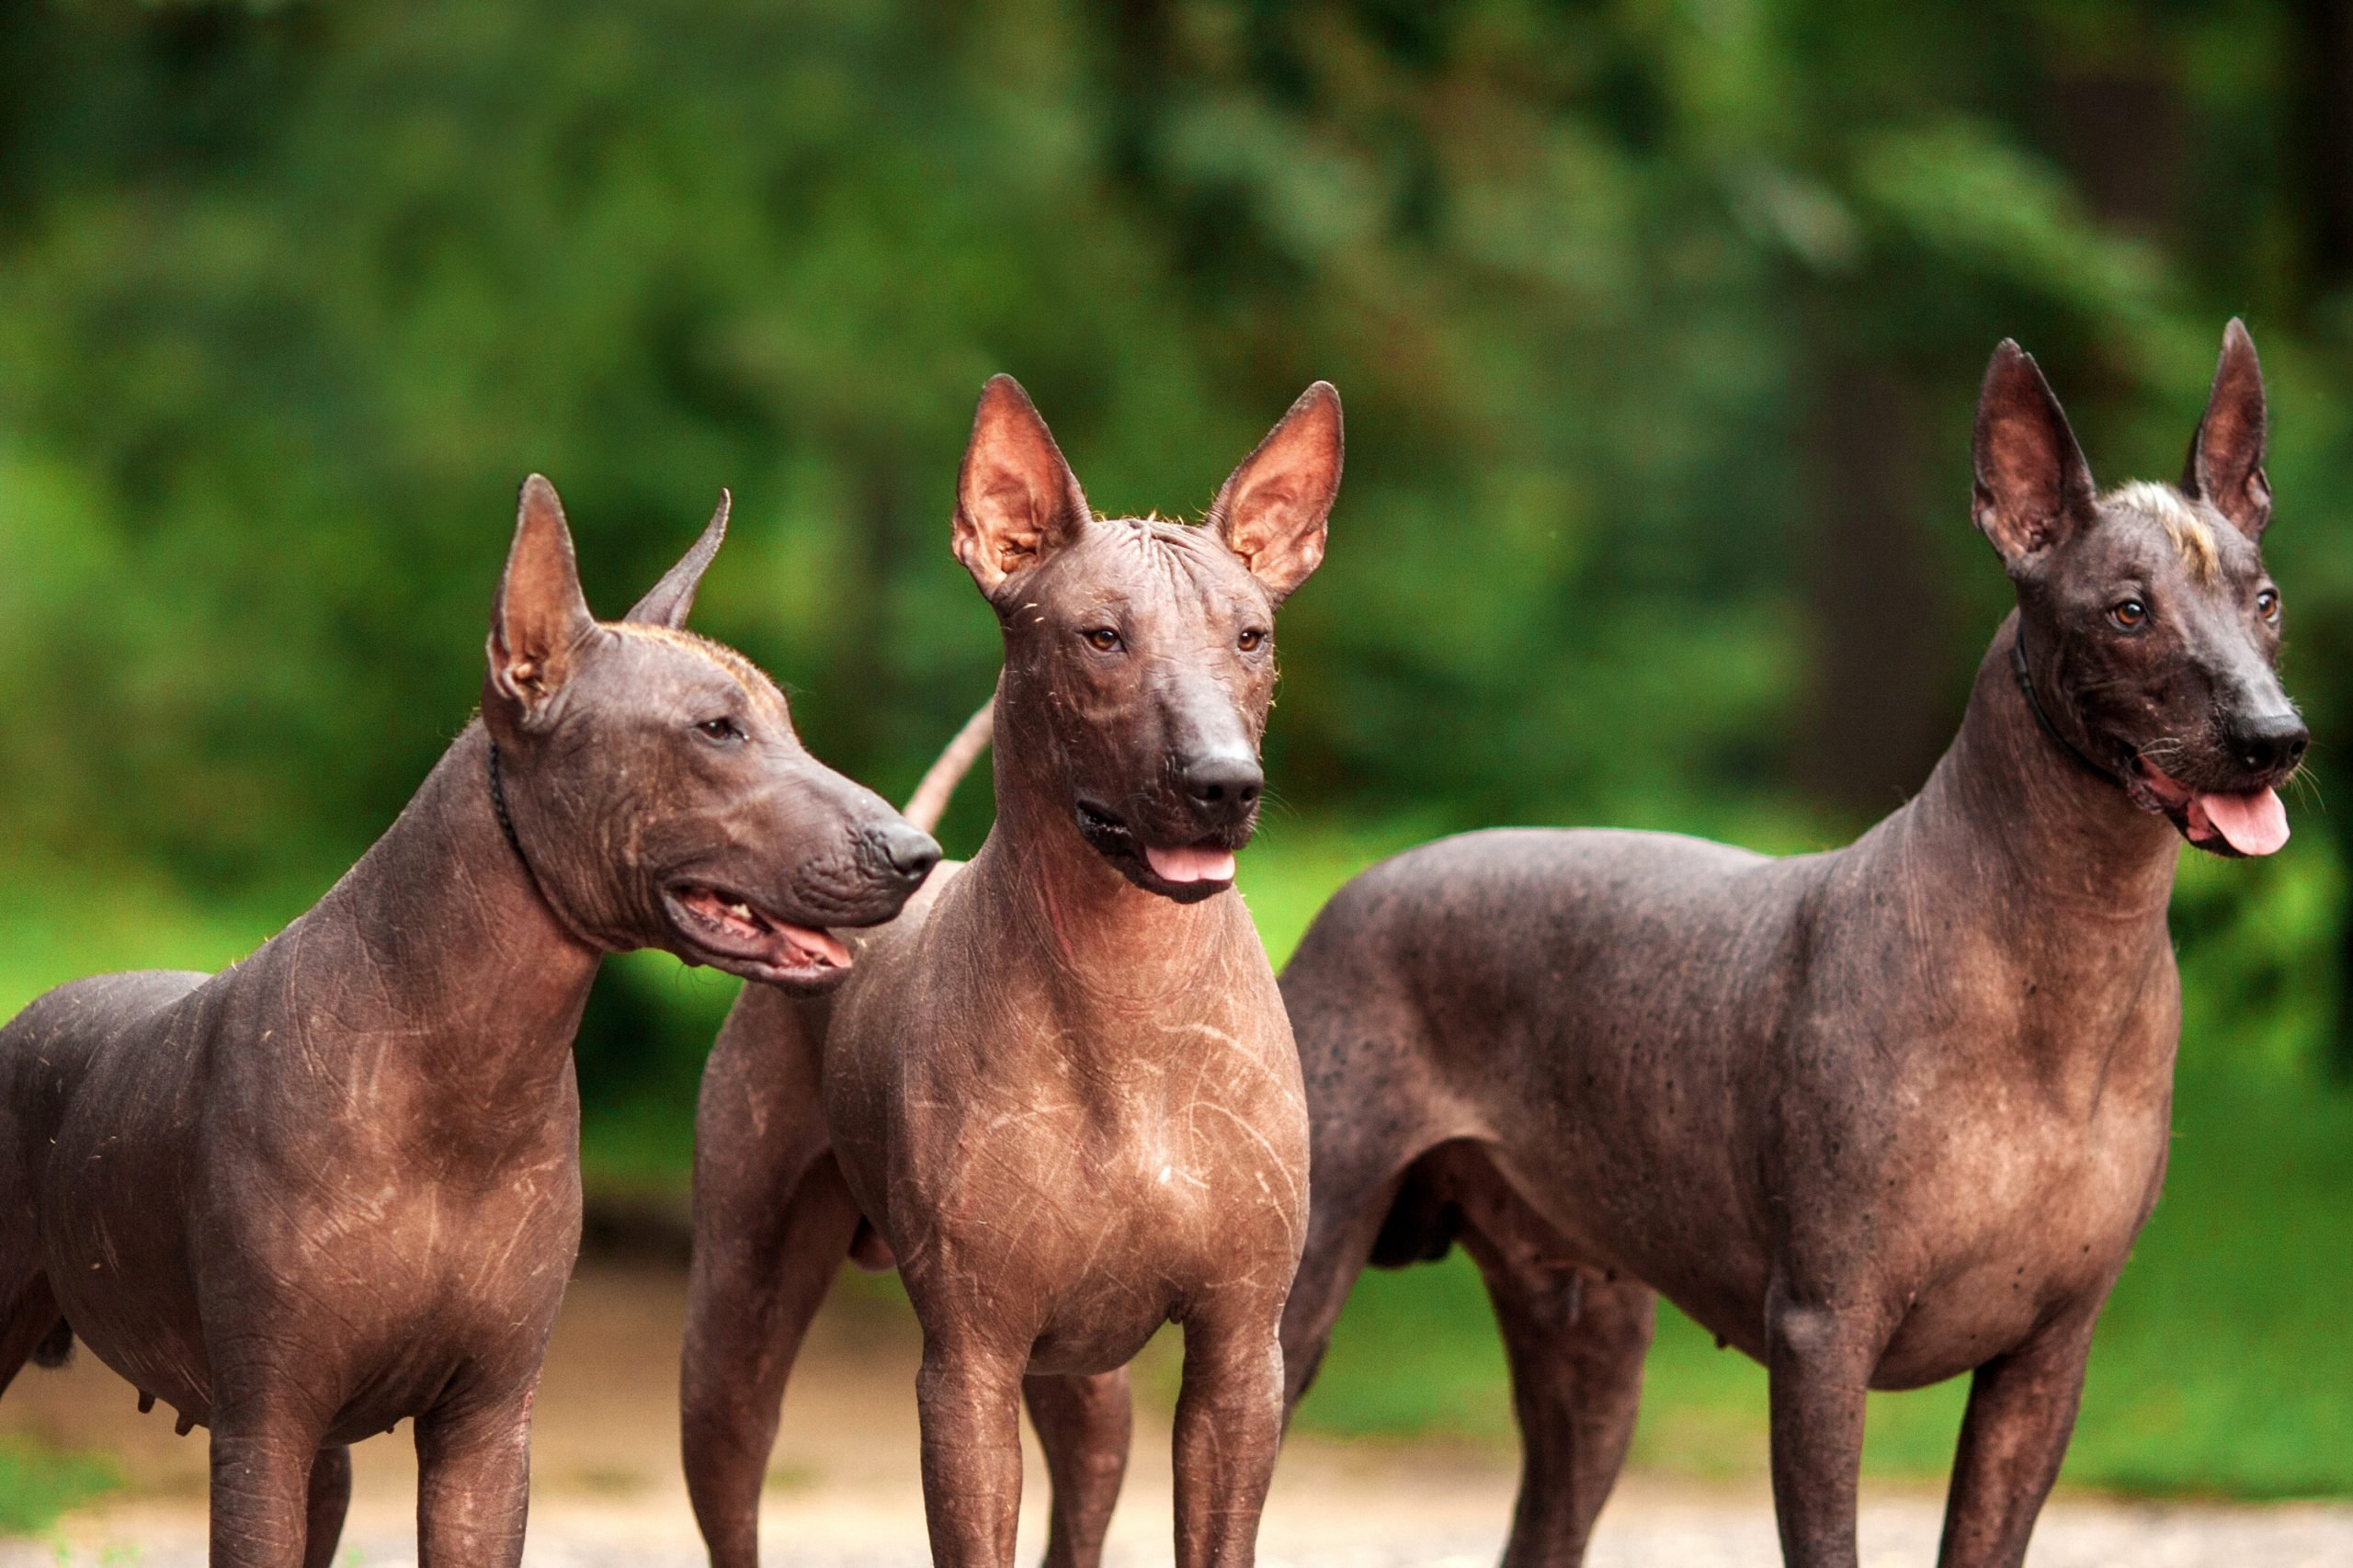 Three Mexican Hairless Dogs Outside staring intently ahead with a woods in the background.